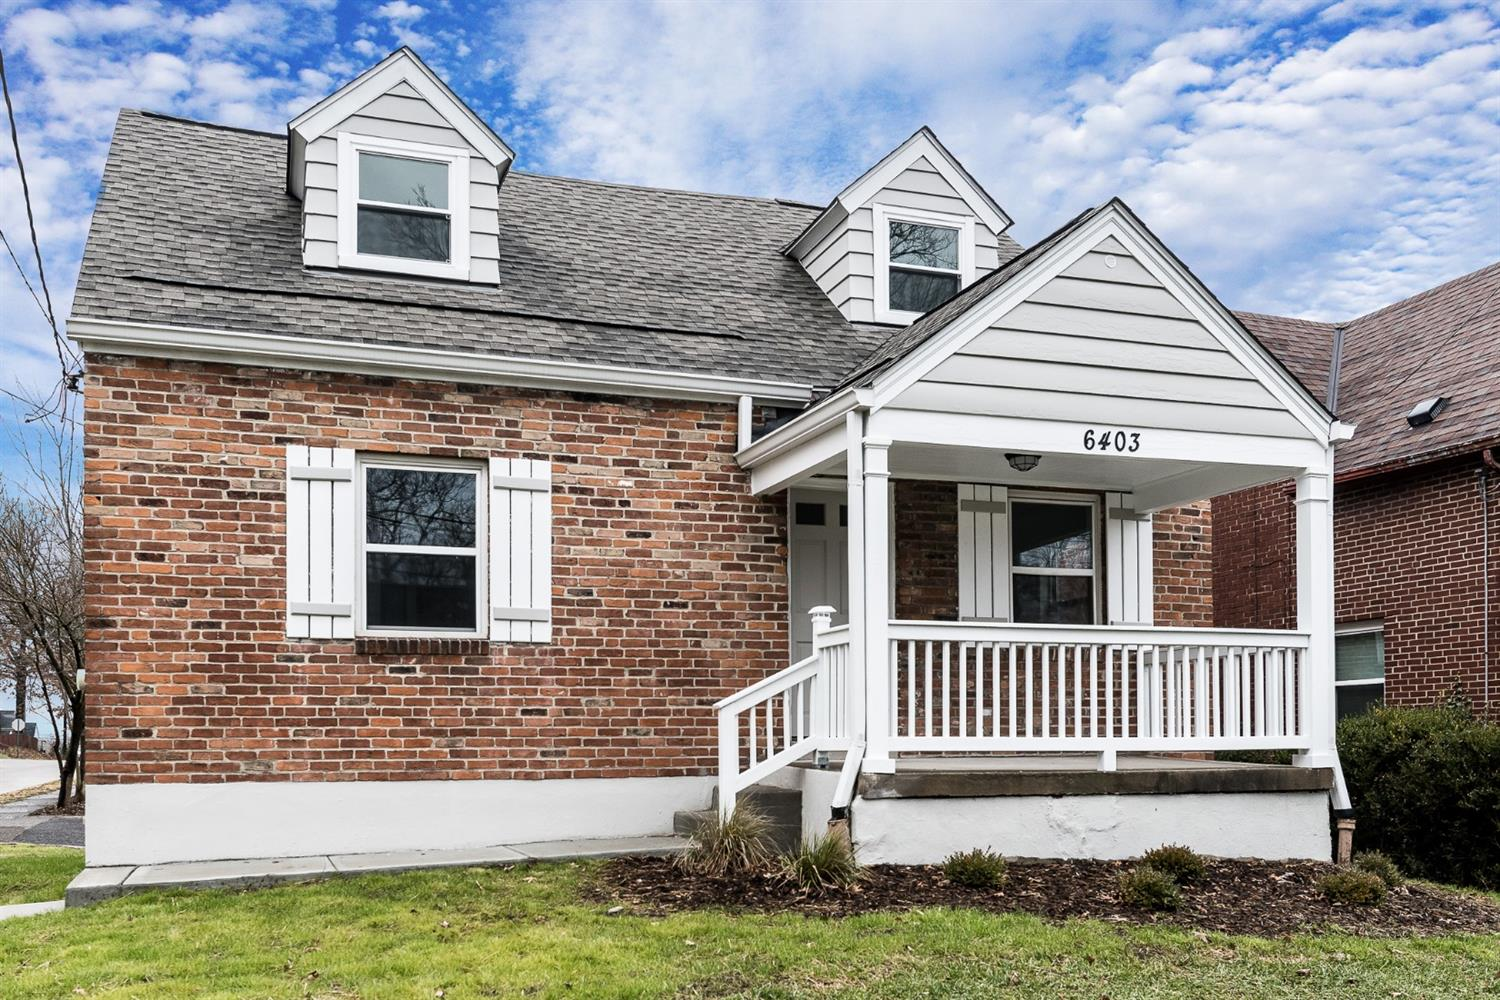 Property for sale at 6403 Mayflower Avenue, Golf Manor,  OH 45237